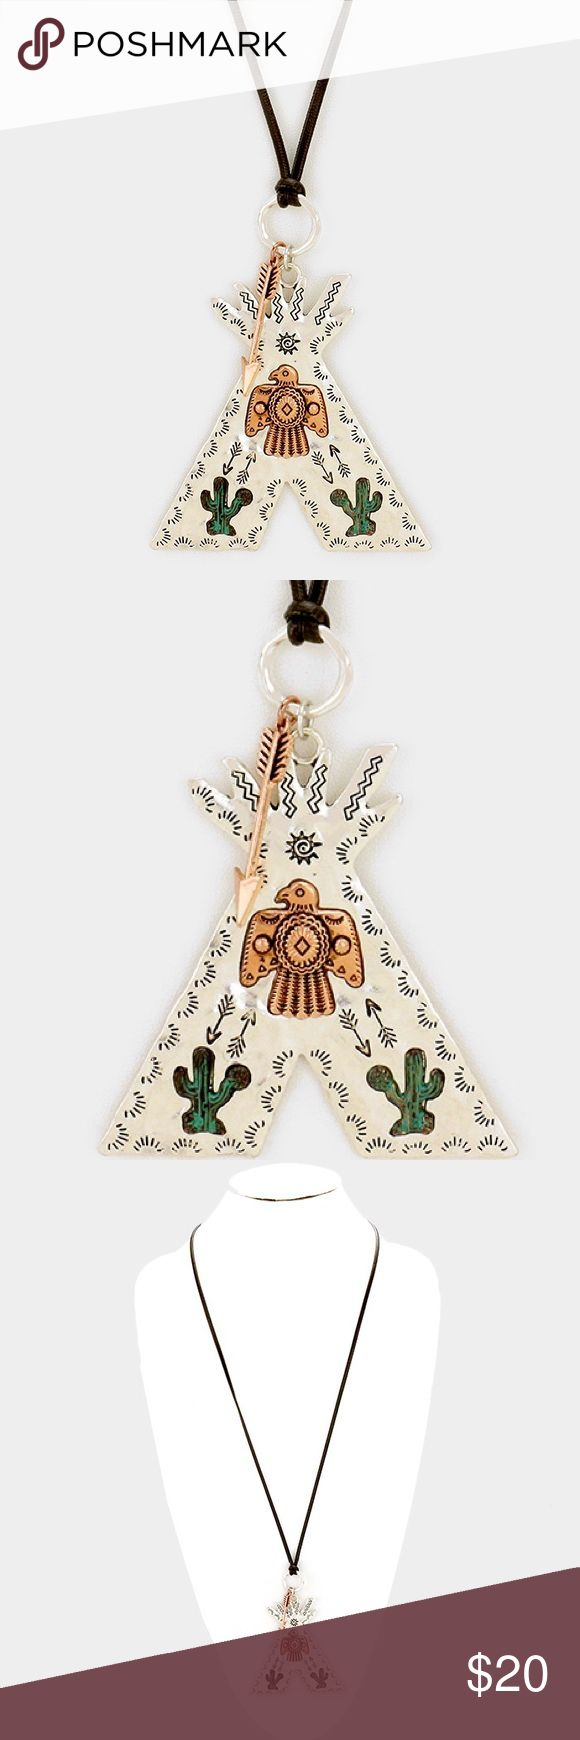 "Aztec Pendant Necklace • Color : Multi • Theme : Animal, Arrow, Cactus  • Necklace Size : 30"" + 3"" L • Pendant Size : 3"" X 3"" • Cactus aztec bird pendant & arrow charm long faux leather necklace Jewelry Necklaces"